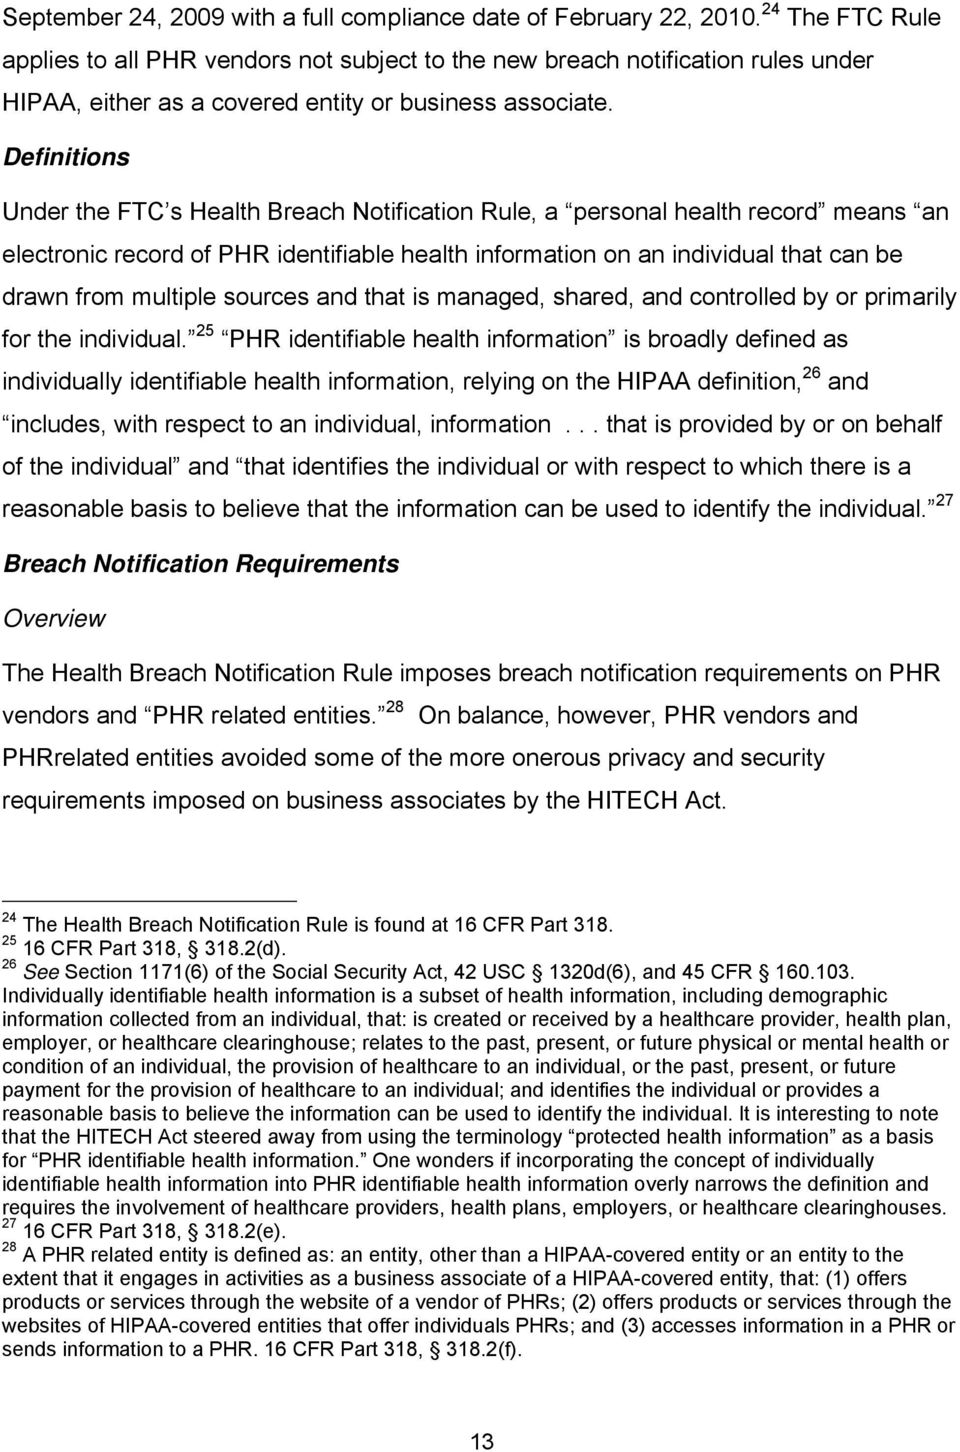 Definitions Under the FTC s Health Breach Notification Rule, a personal health record means an electronic record of PHR identifiable health information on an individual that can be drawn from